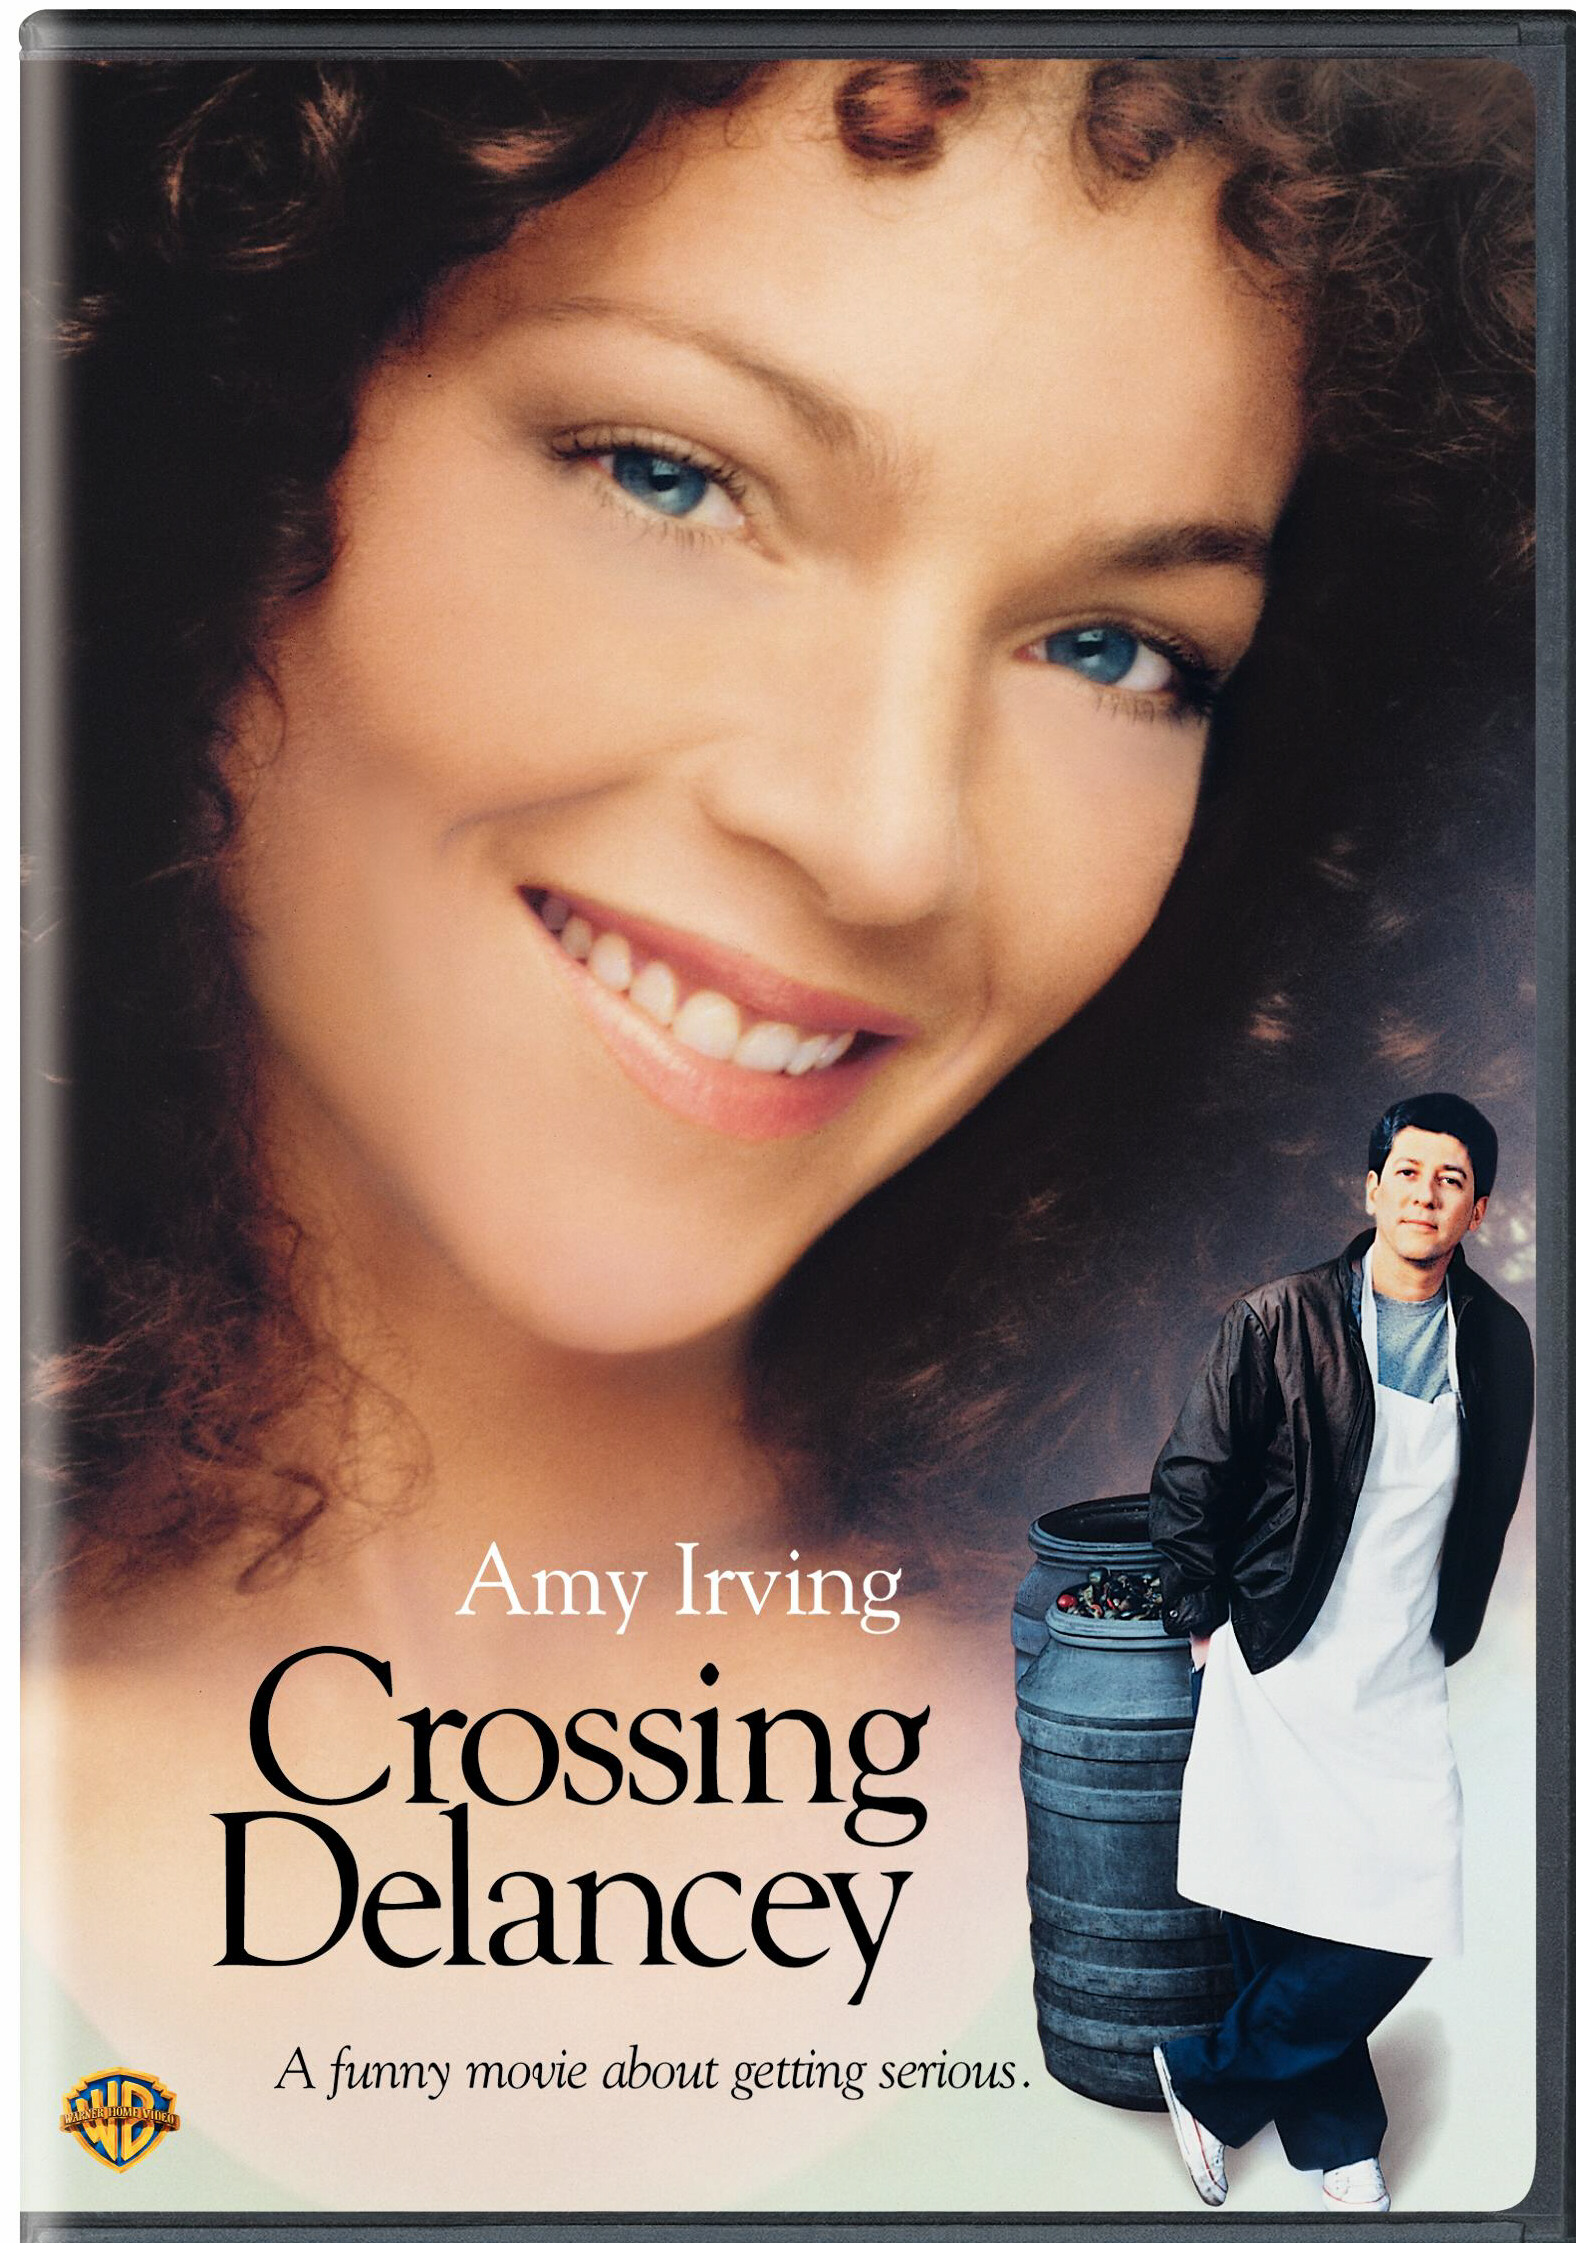 copalis crossing jewish single women Crossing delancey (1988) on imdb irving's performance and character epitomize the thirty-something single new york working woman trying an unmarried jewish.